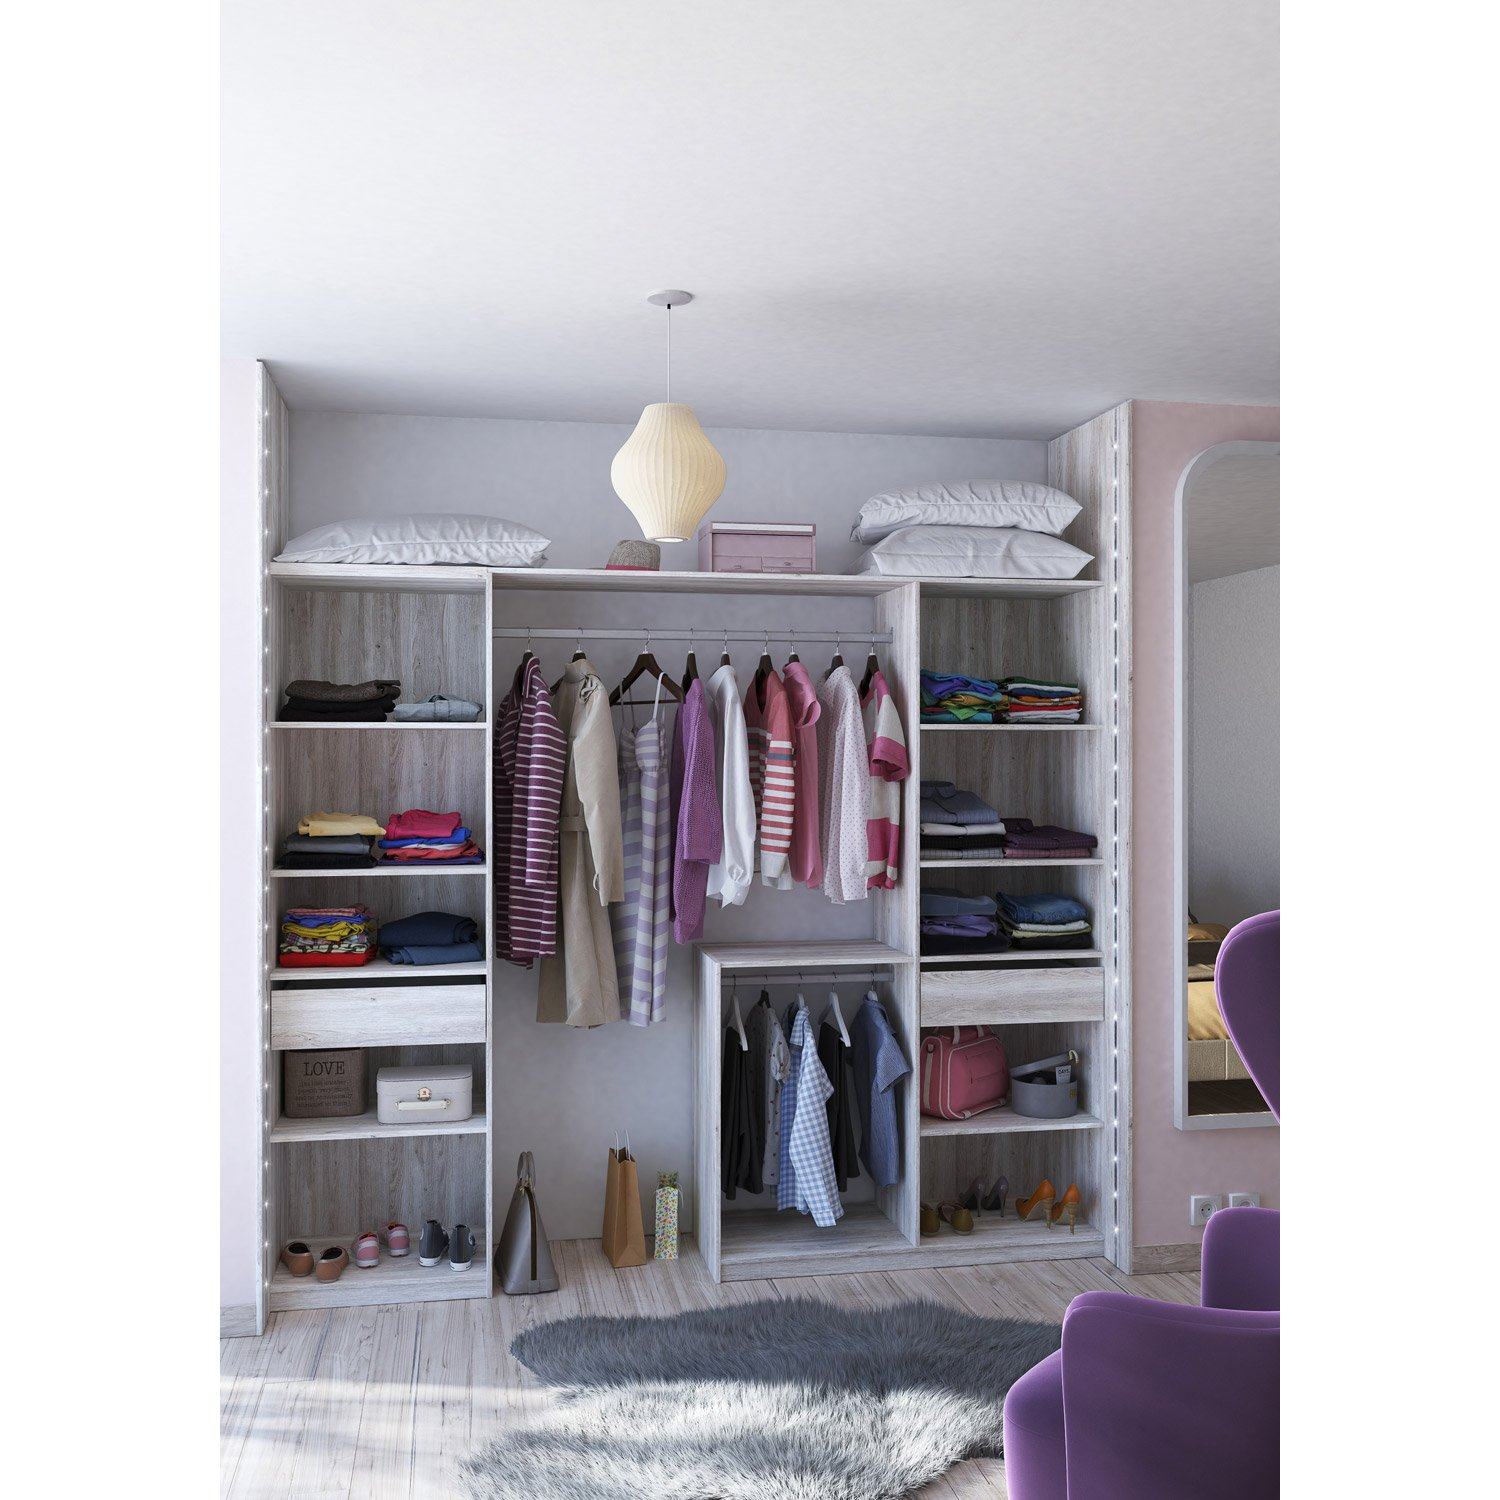 Dressing spaceo home gris dressing leroy merlin - Dressing kit pas cher ...